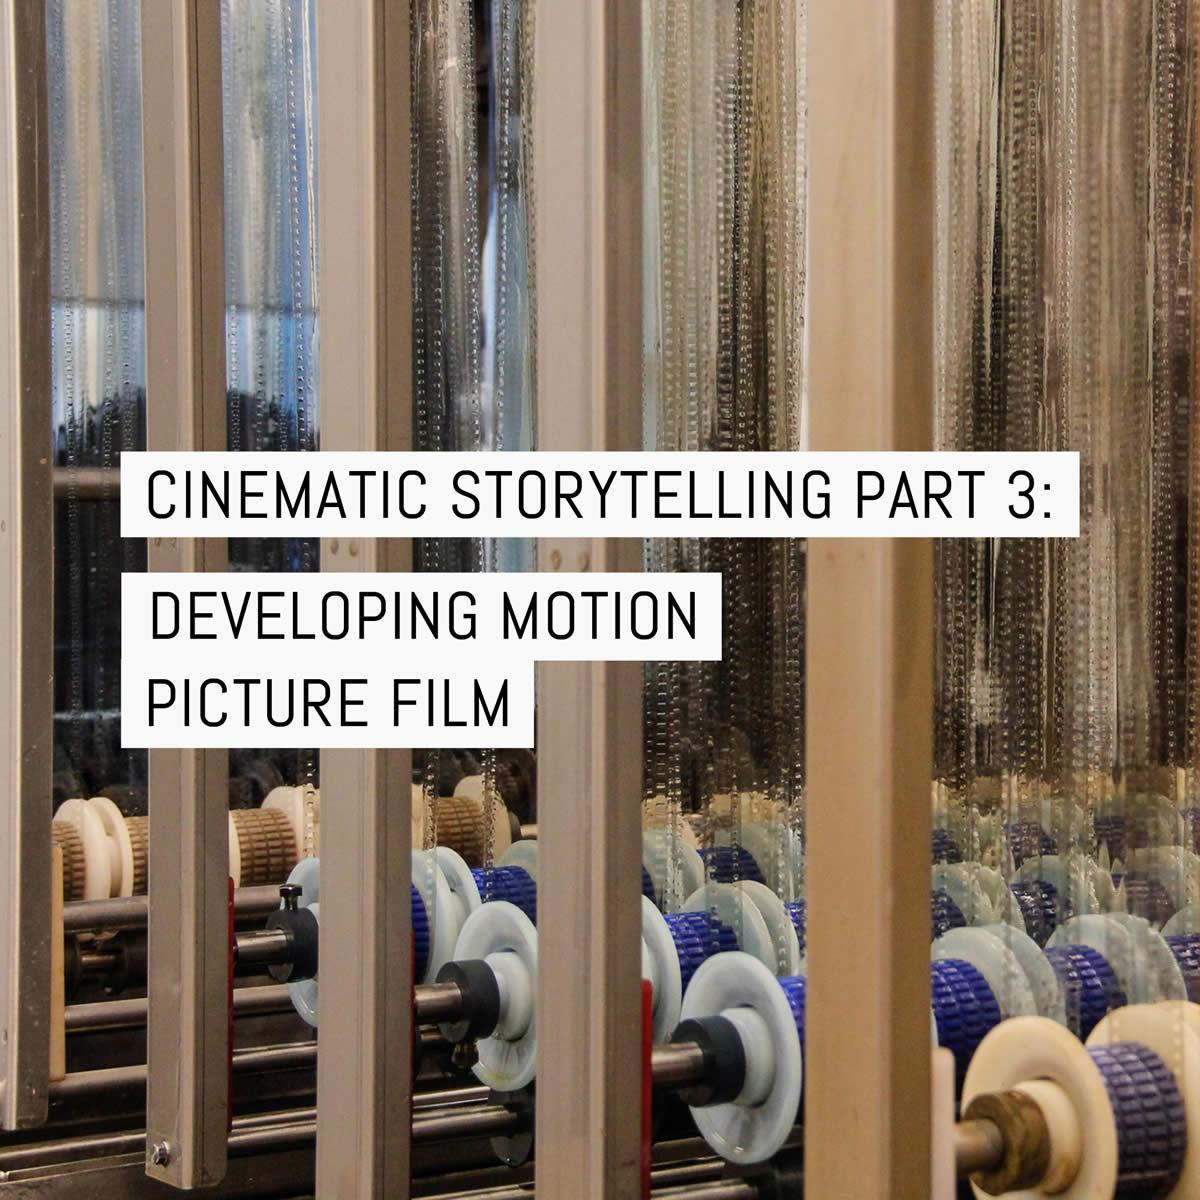 Cinematic storytelling part 3: developing motion picture film